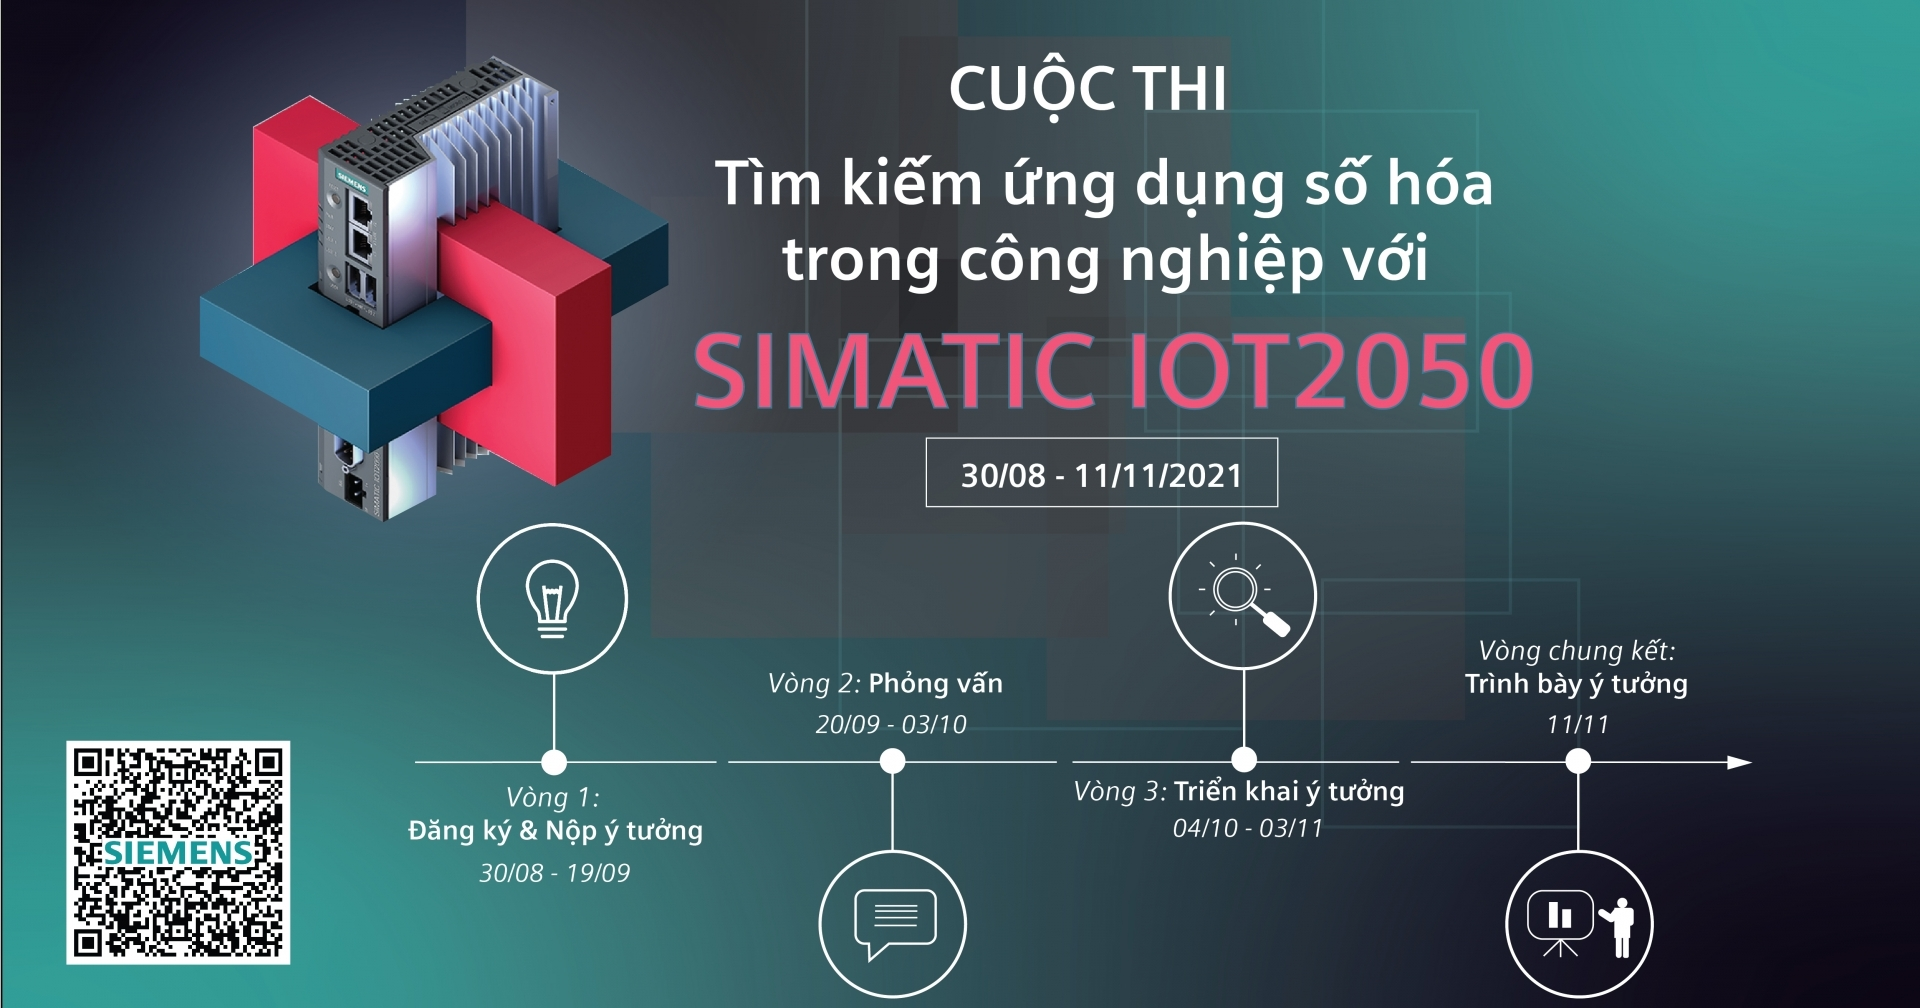 Siemens launches contest for Vietnamese engineers and students